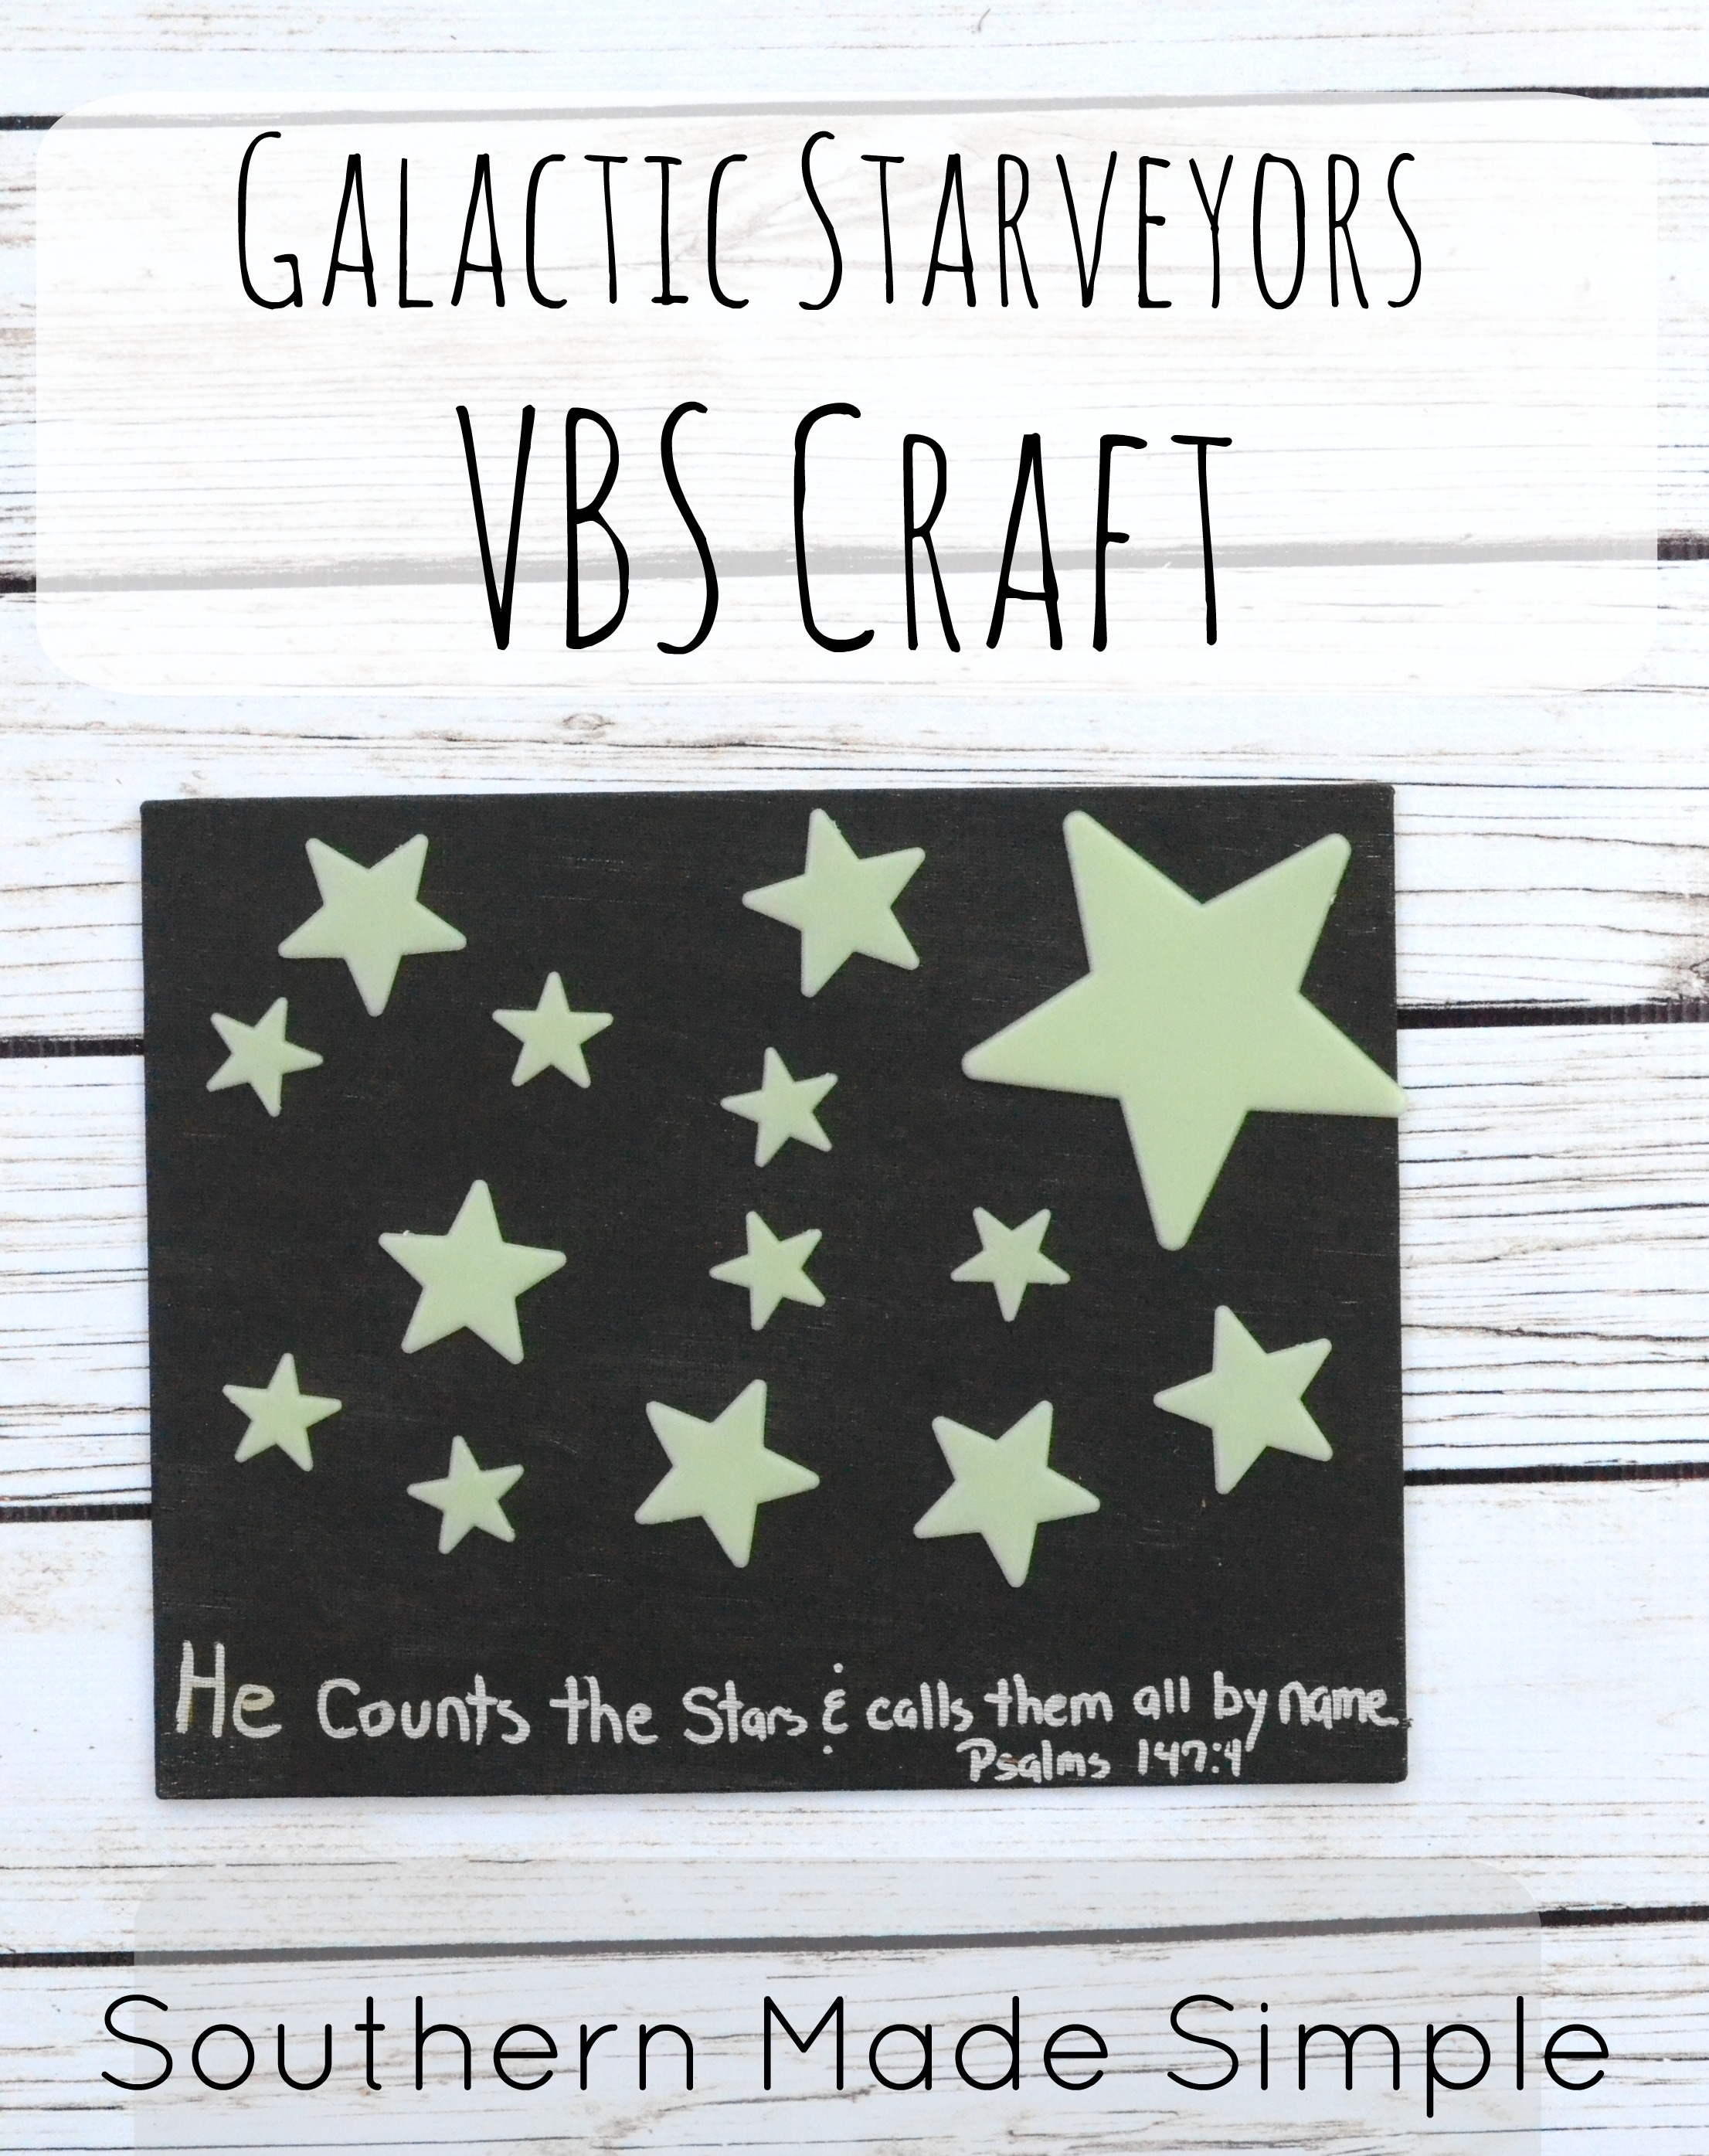 Easy Vbs Galactic Starveyors Craft Idea